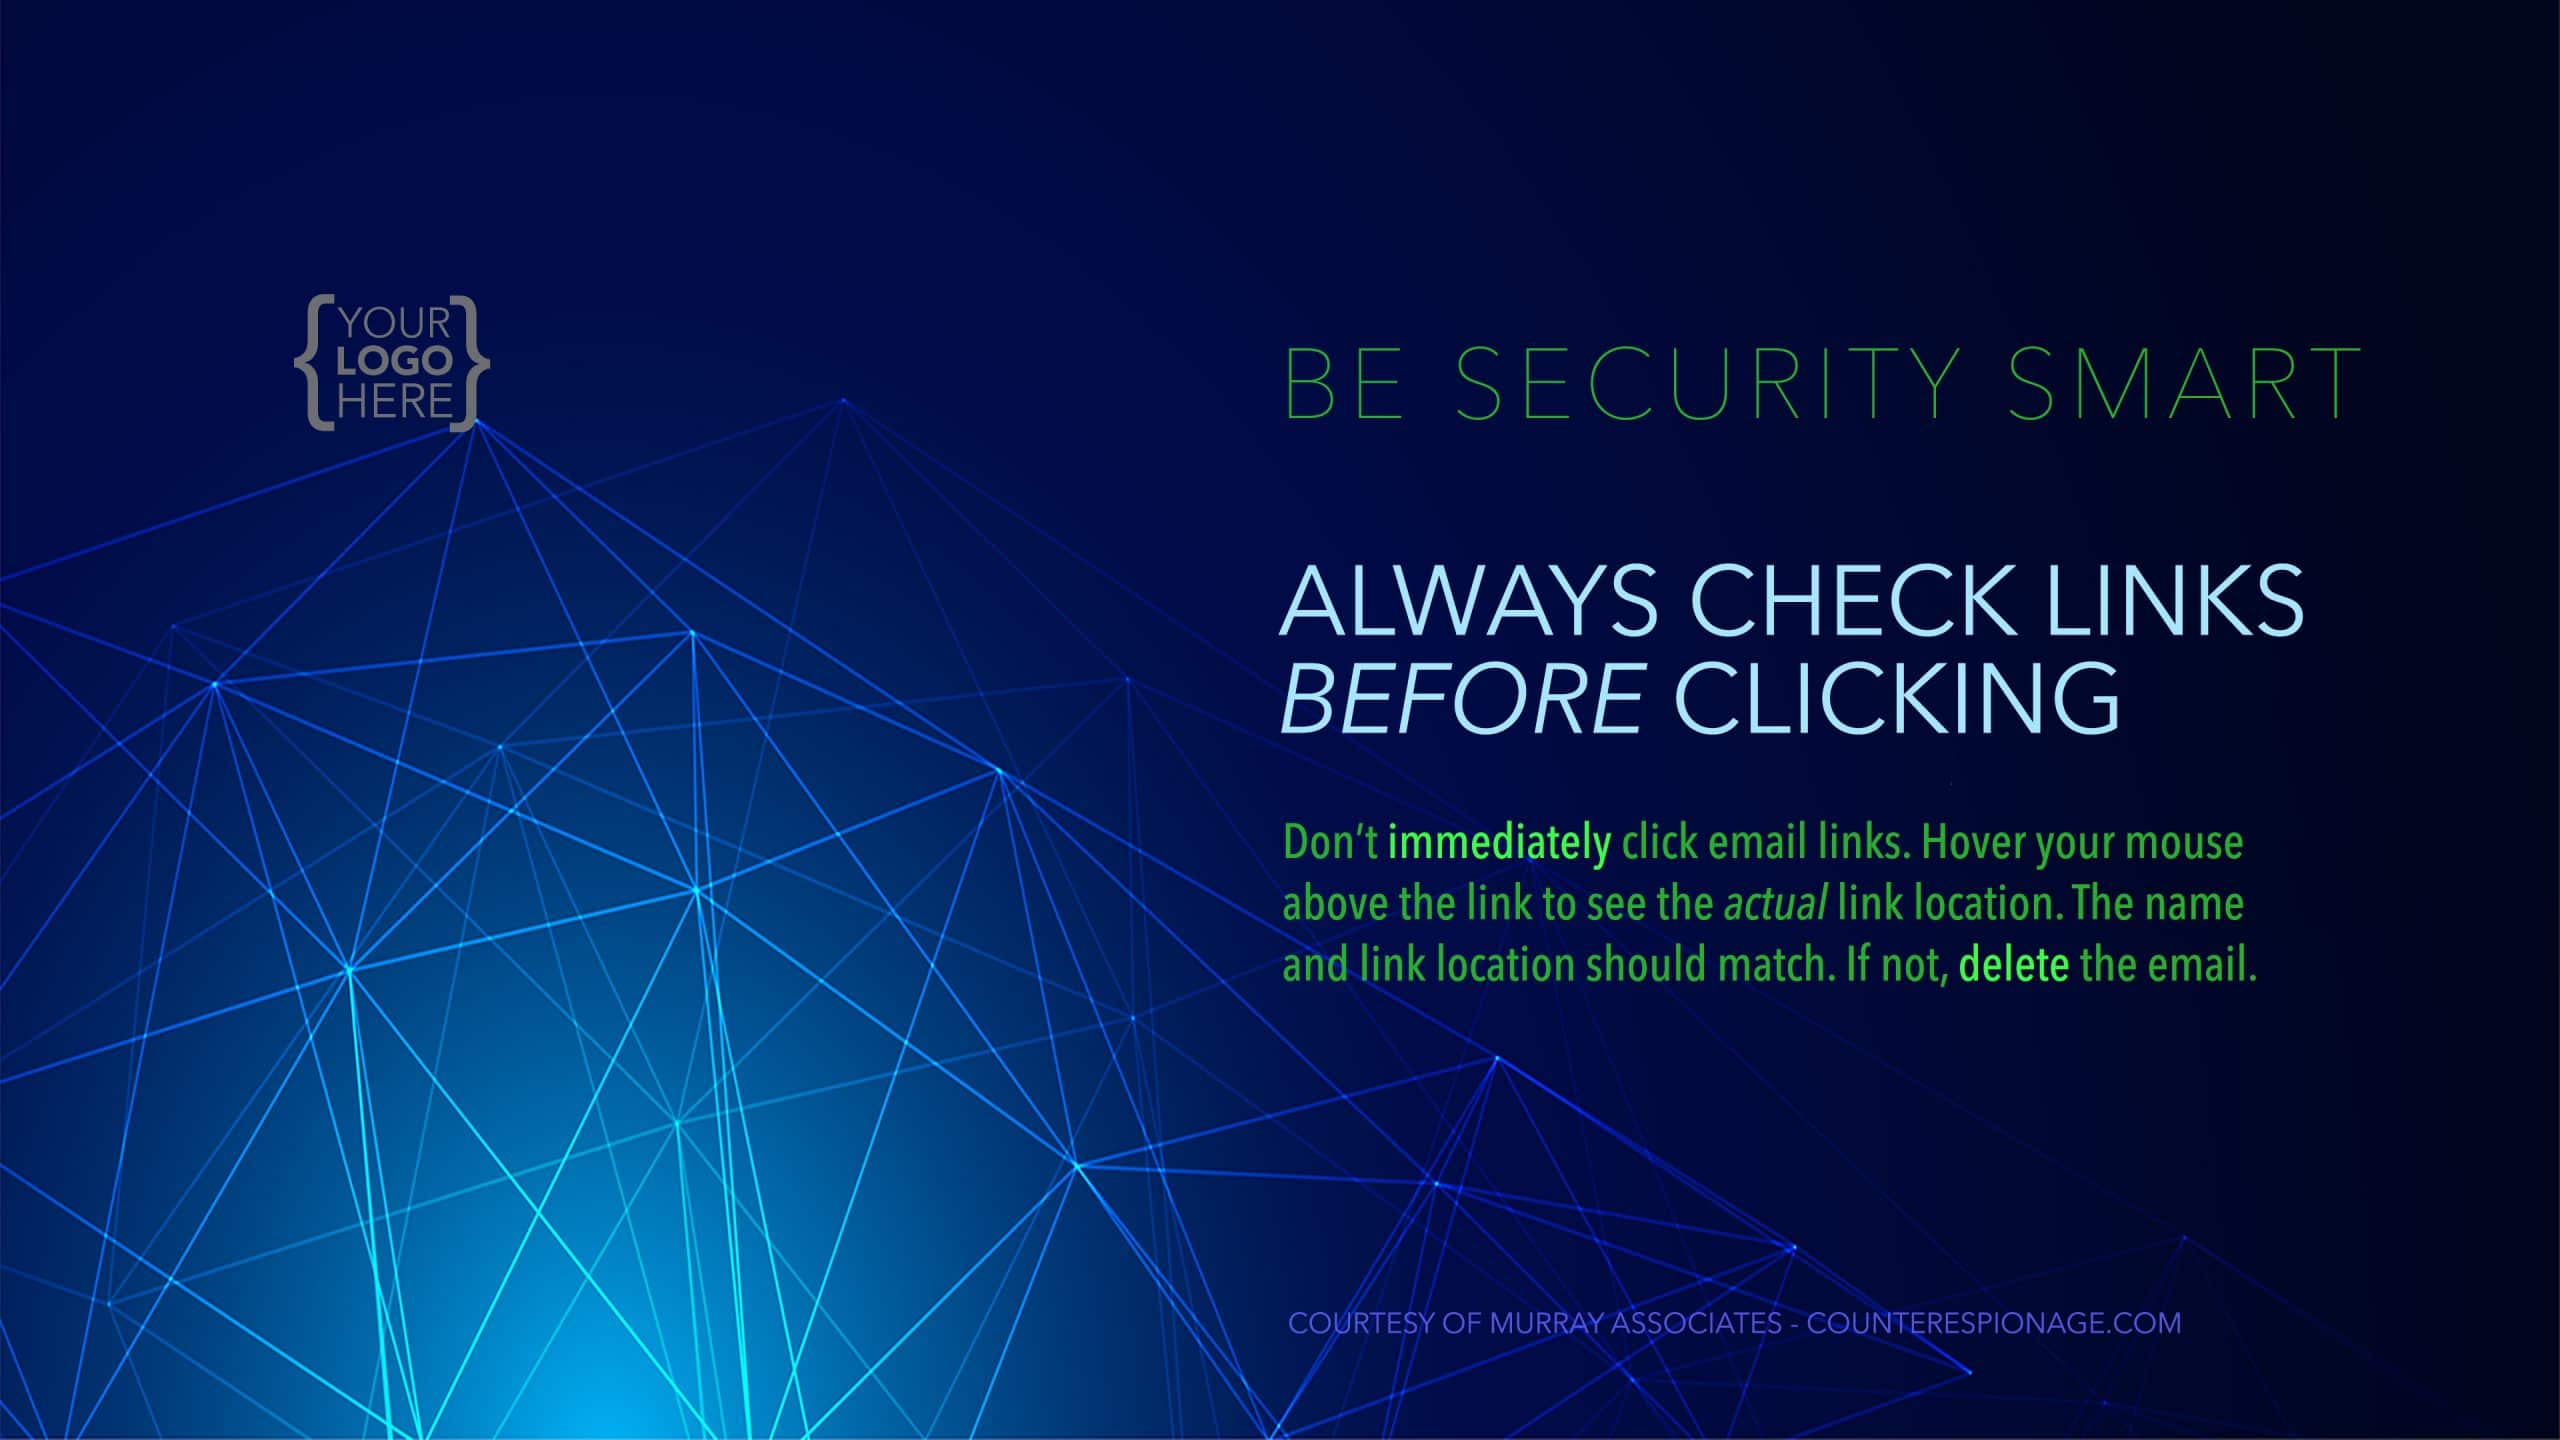 Security Reminder Screen Saver 2 - Always Check